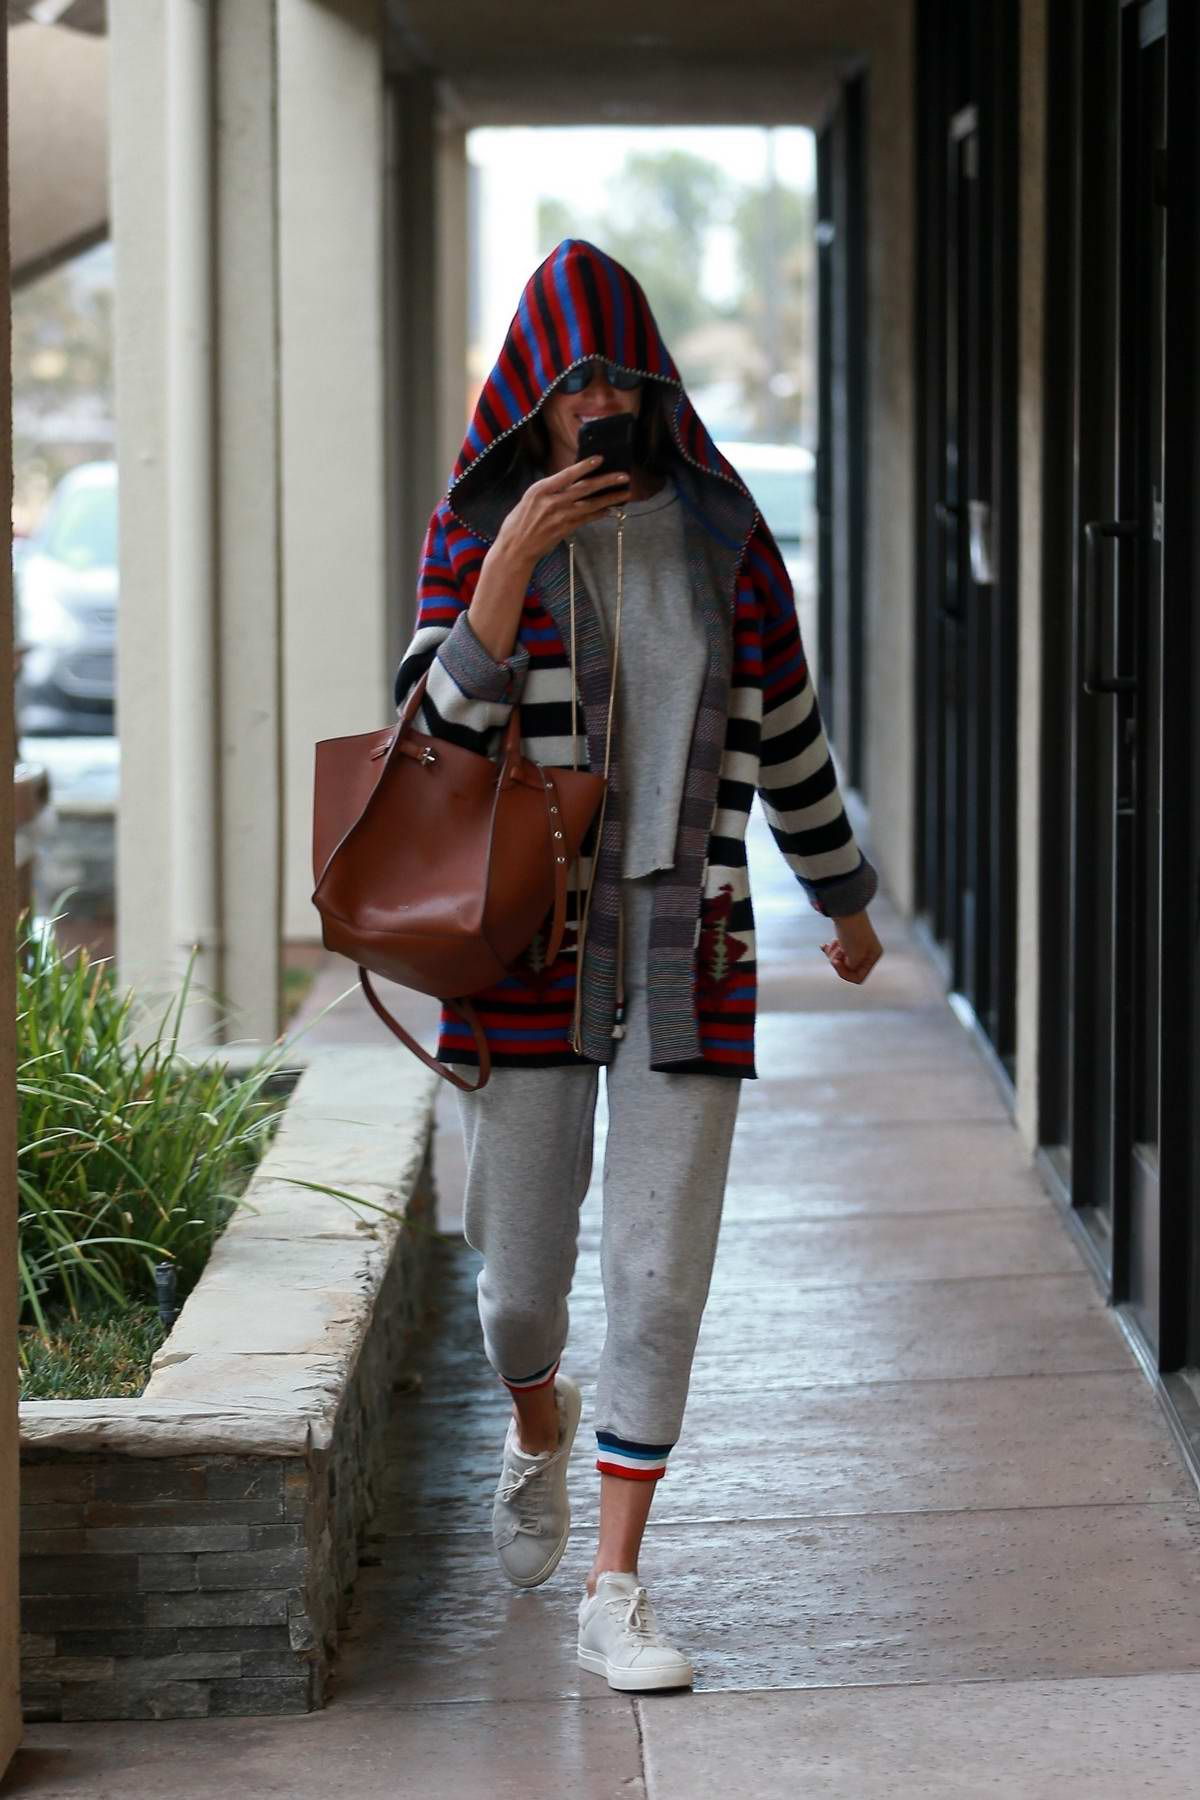 Alessandra Ambrosio braves the rain in a hoodie and grey sweatsuit while arriving at a Facial Clinic in Los Angeles